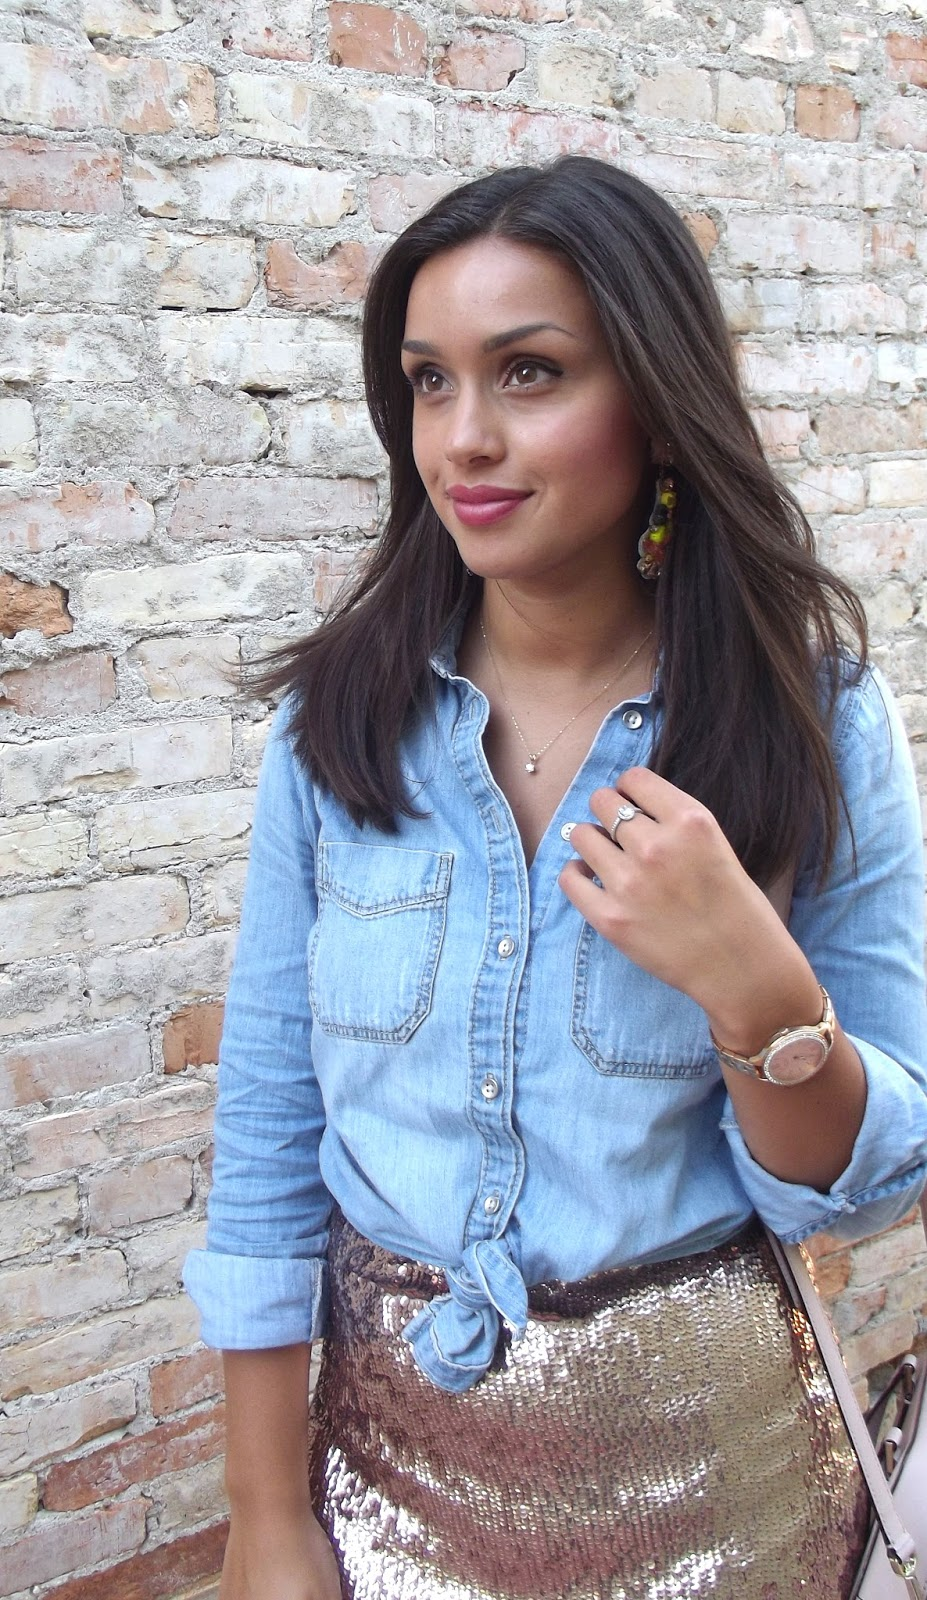 Buy Sequin gold skirt with denim shirt picture trends